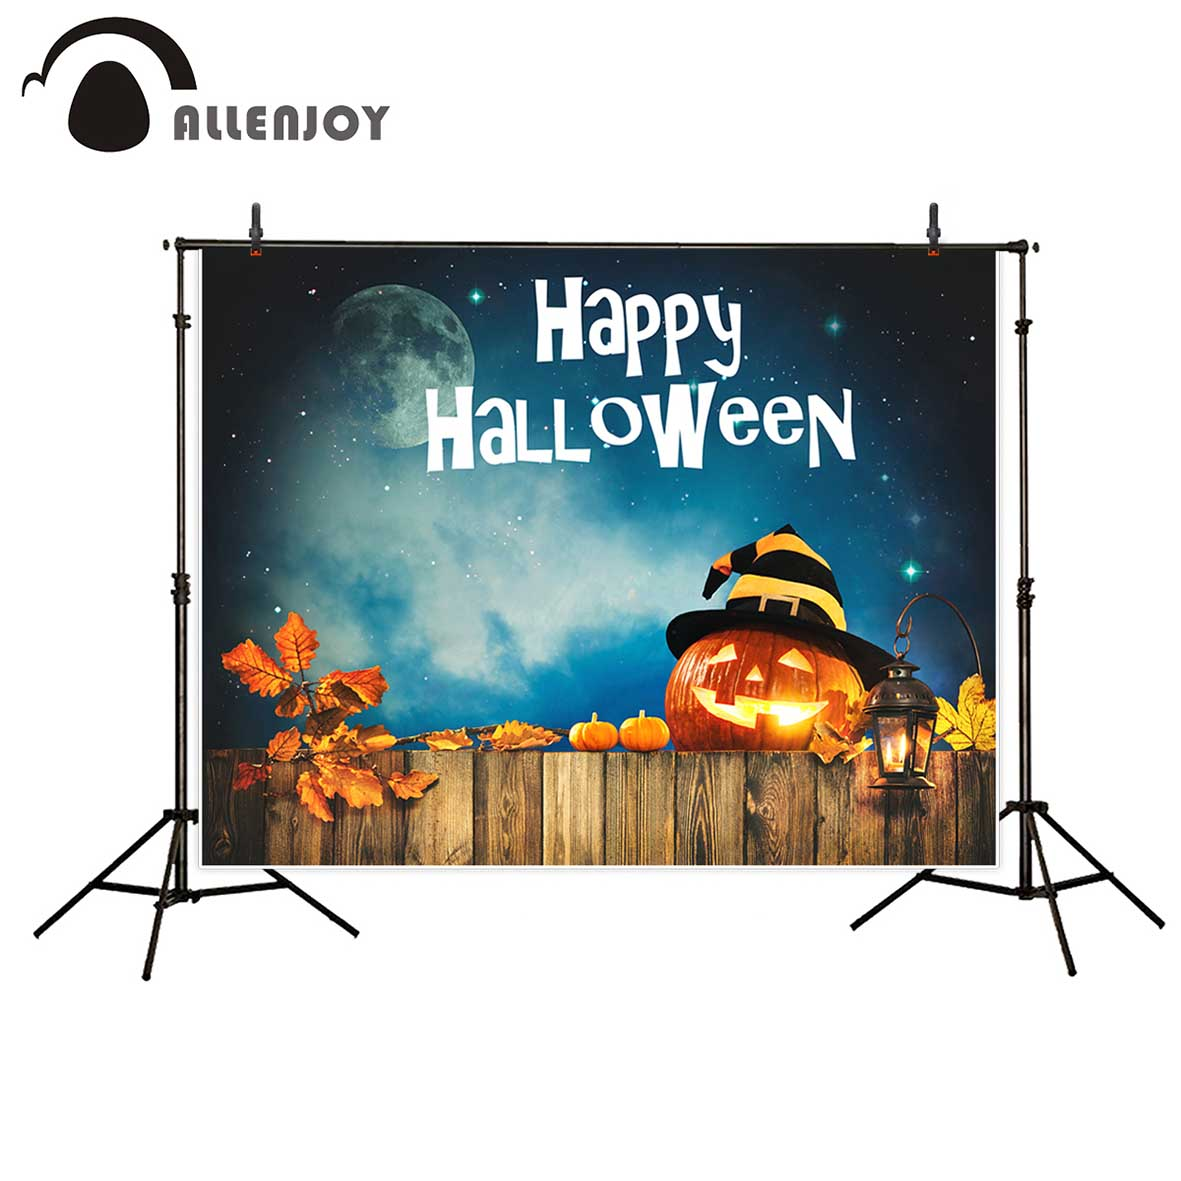 Allenjoy Halloween background cute pumpkin sky moon backgrounds for photo studio photographic background photo booth backdrop allenjoy background for photo studio full moon spider black cat pumpkin halloween backdrop newborn original design fantasy props